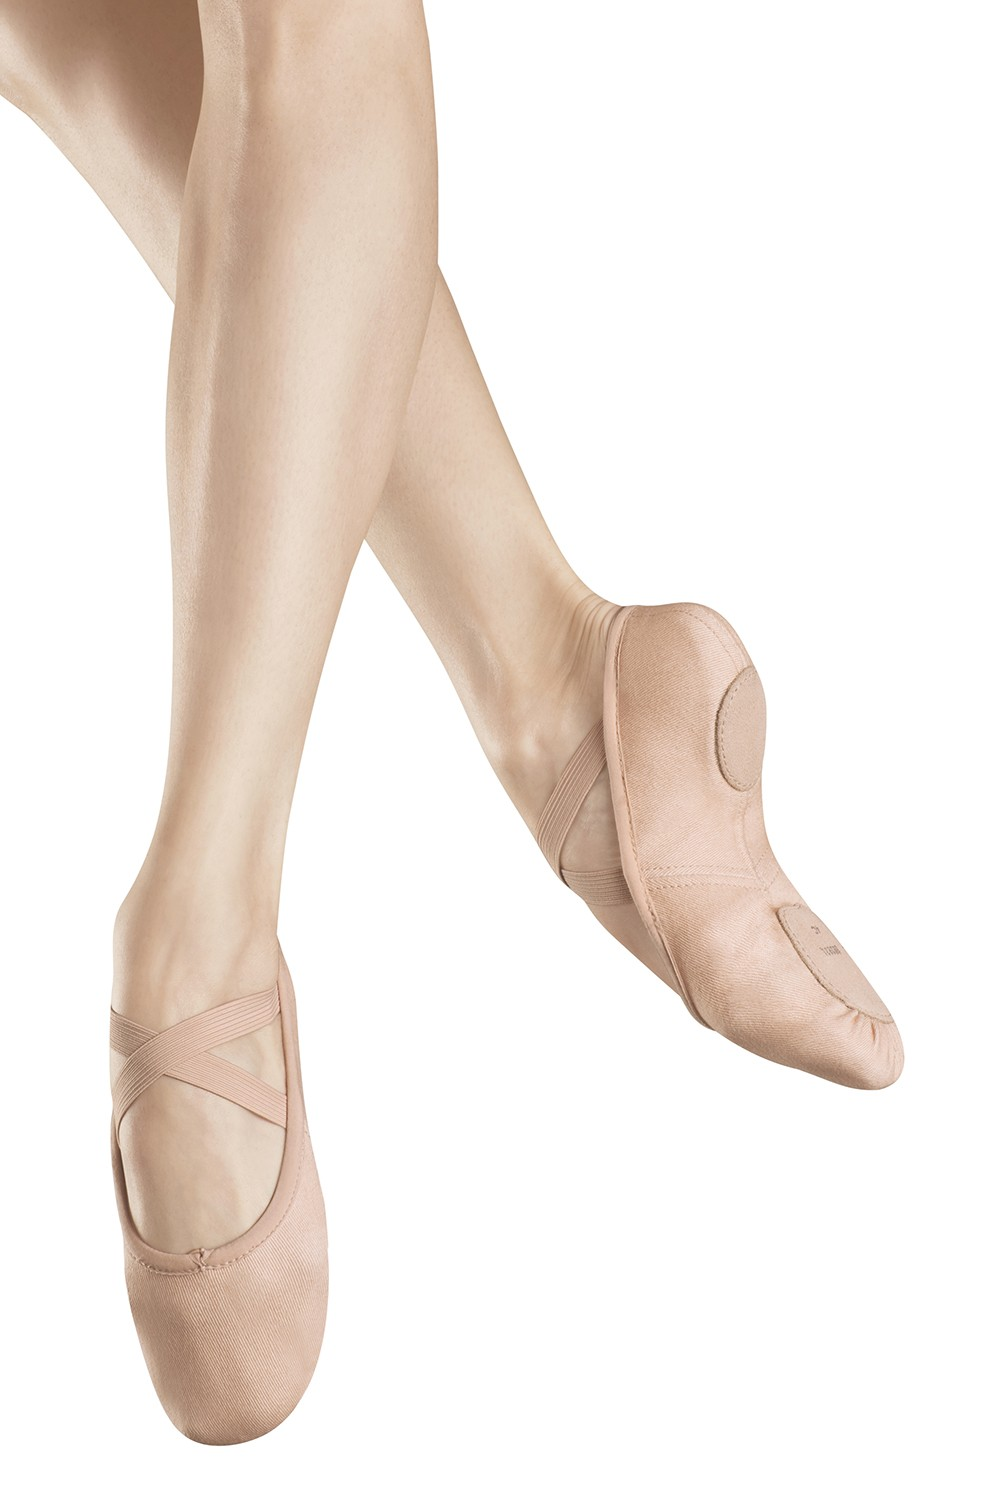 Zenith - Bambina Girl's Ballet Shoes